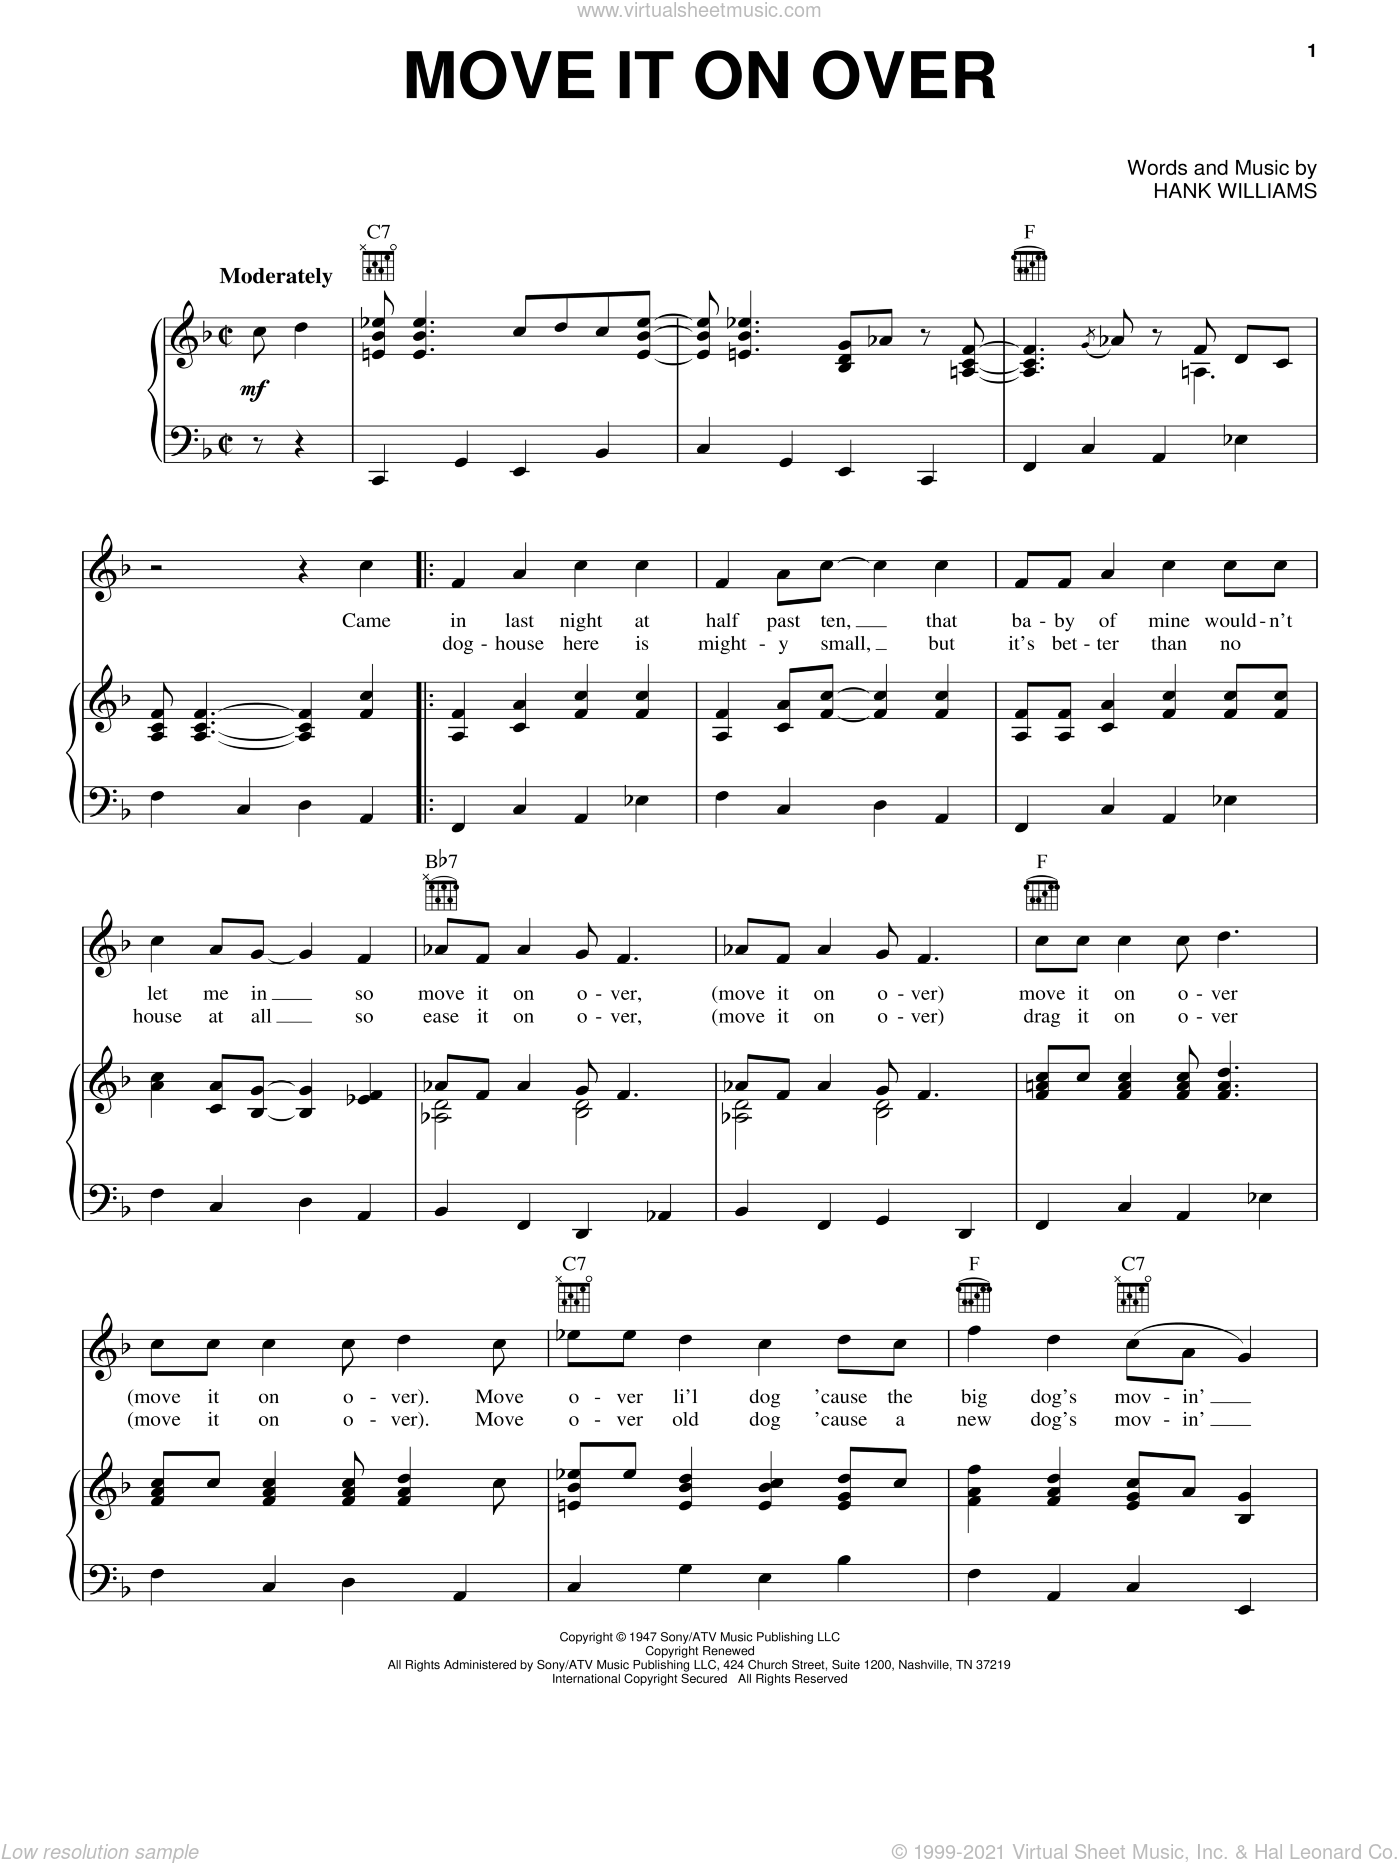 Move It On Over sheet music for voice, piano or guitar by Hank Williams. Score Image Preview.